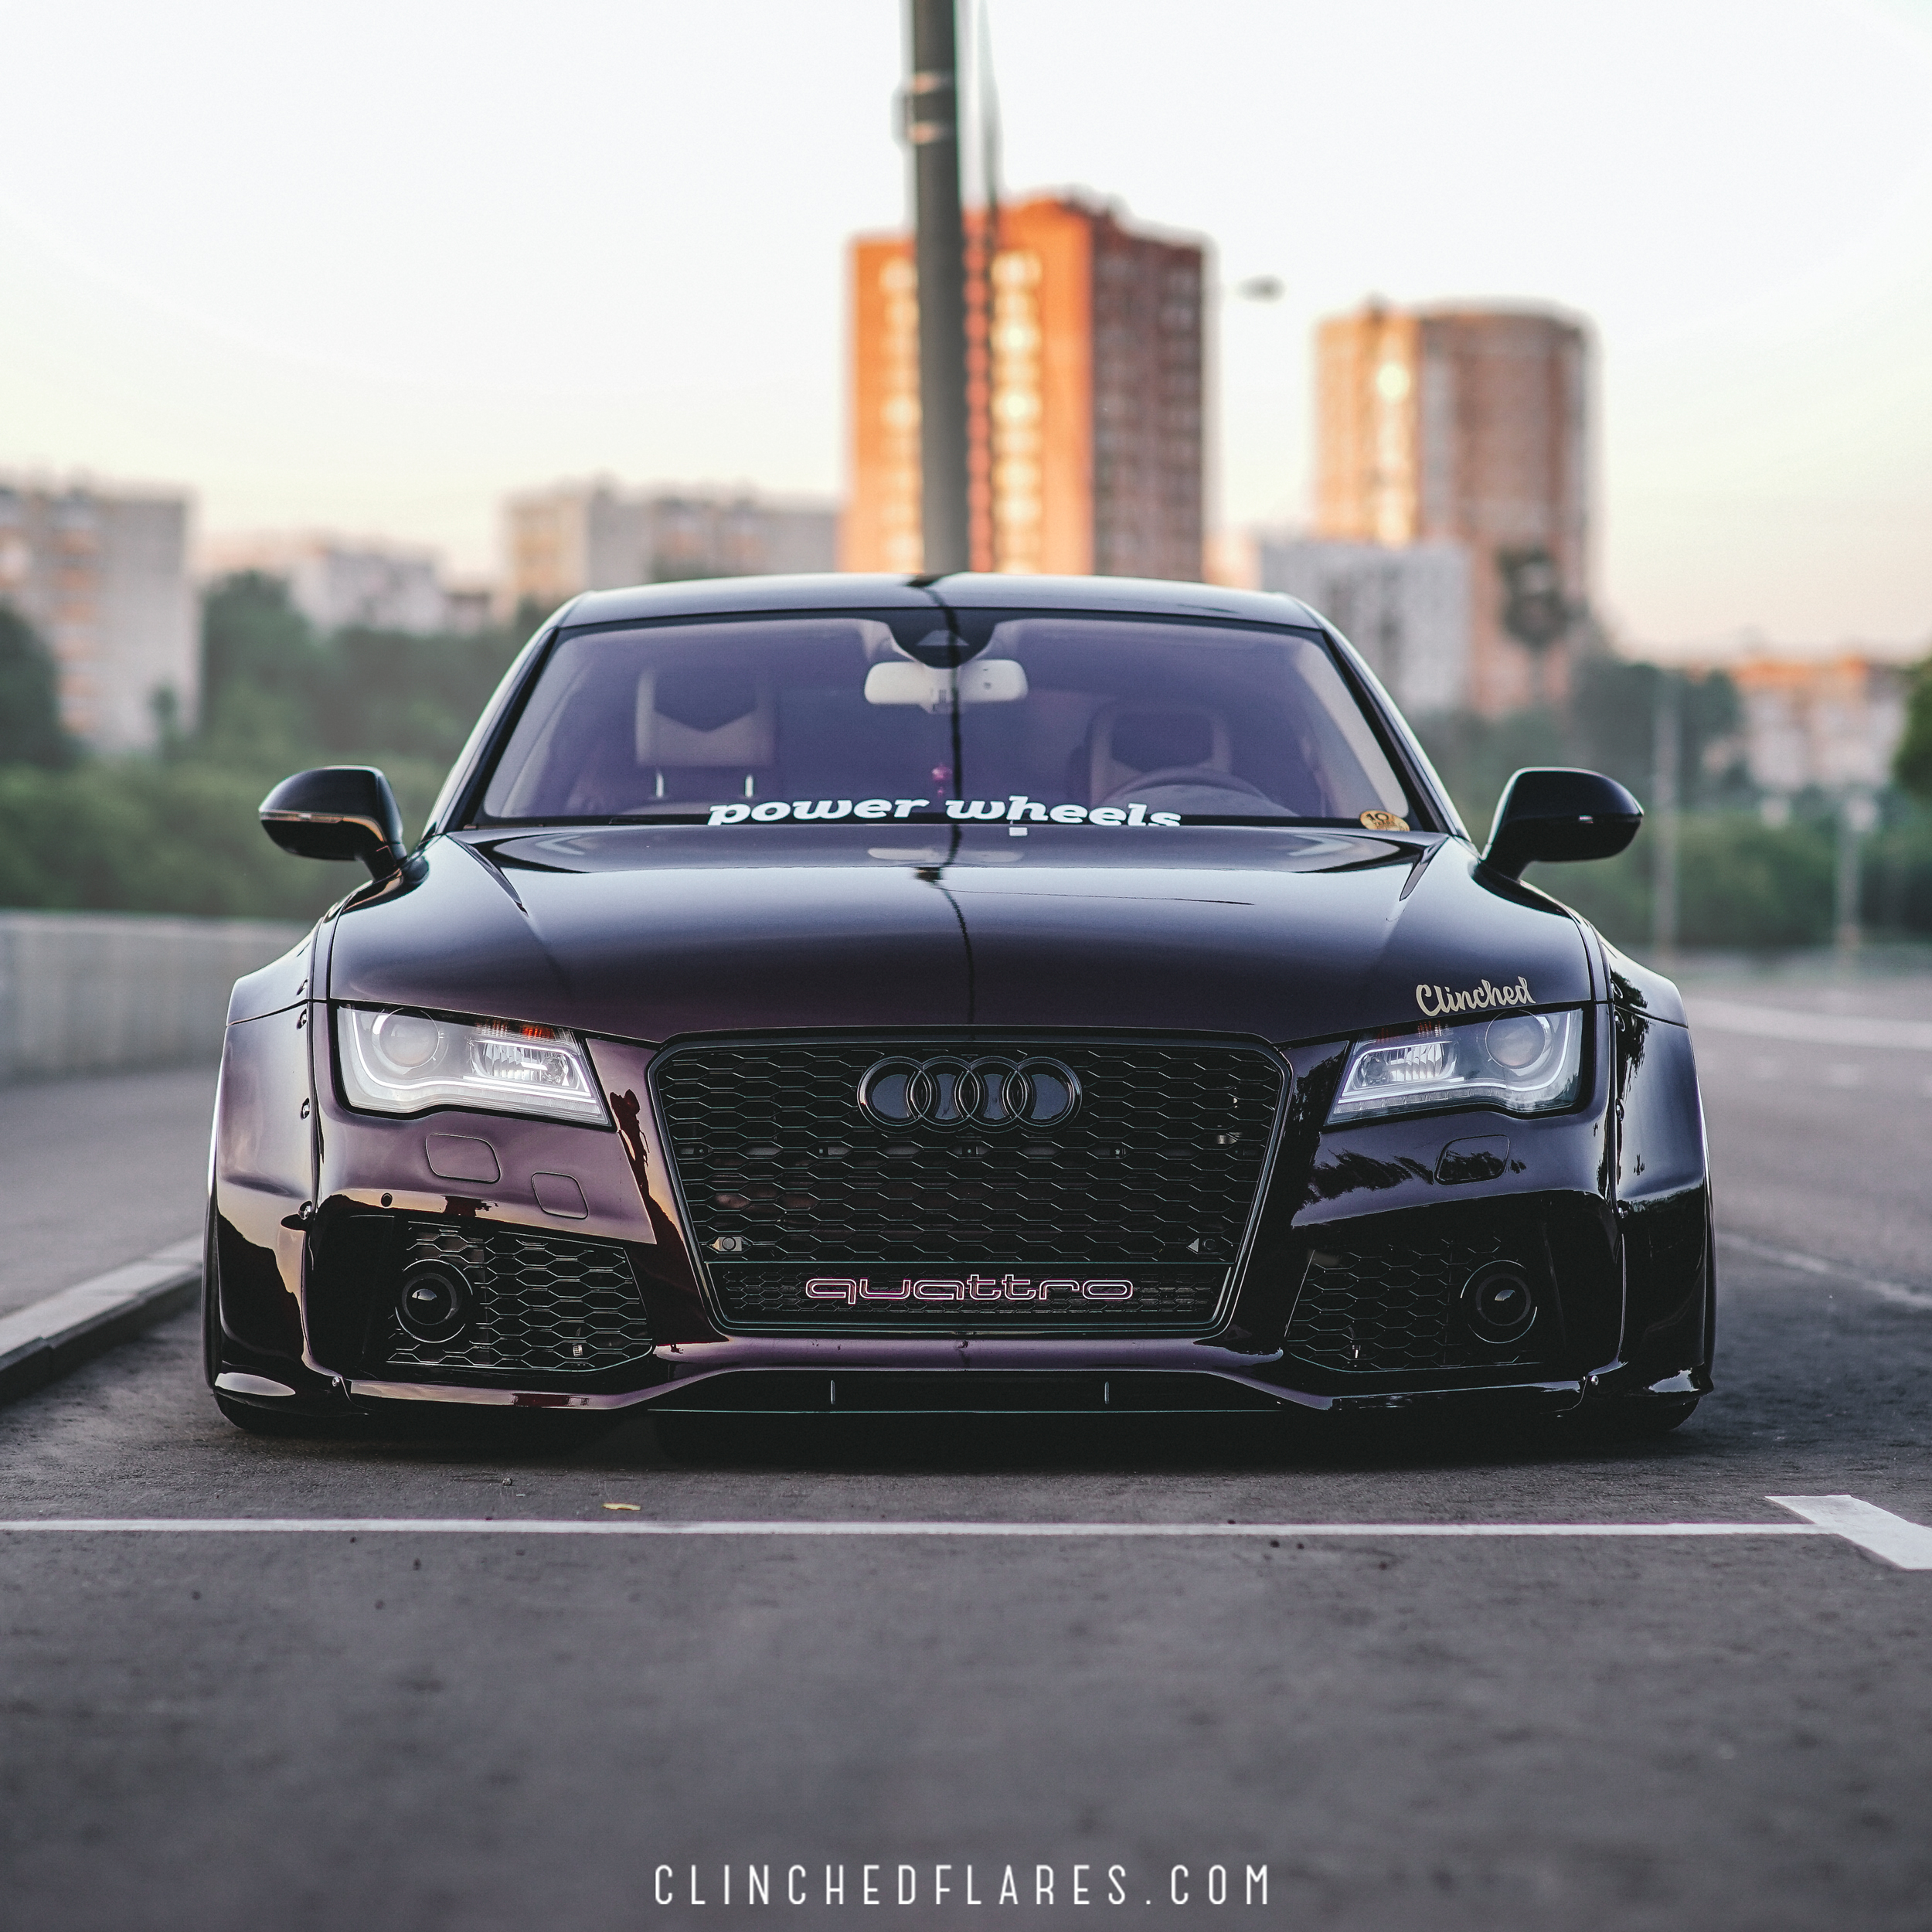 Audi A7 Widebody Kit by Clinched - fits A7, S7, RS7